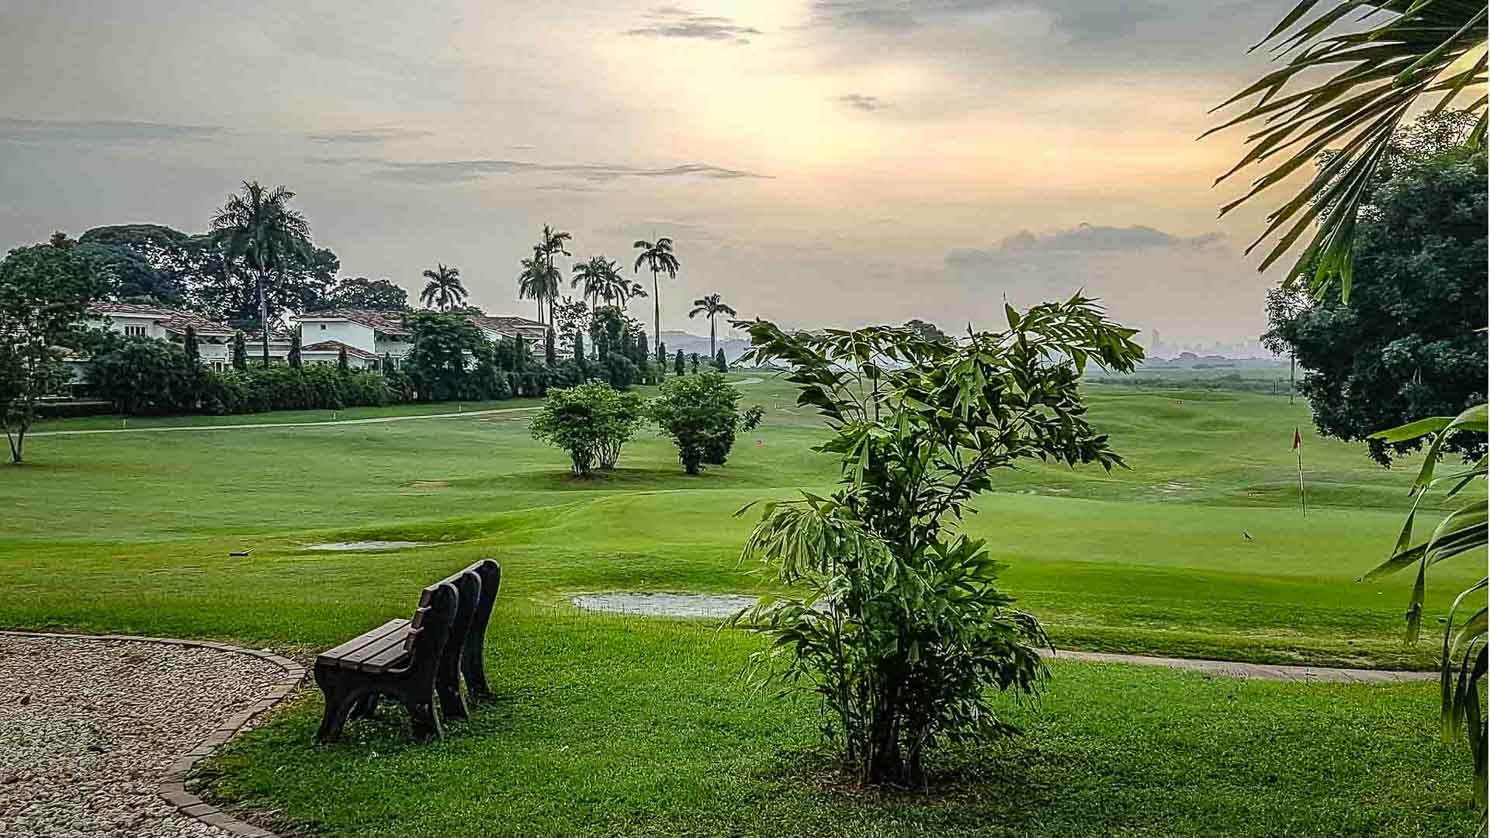 Guided golf vacations in Panama